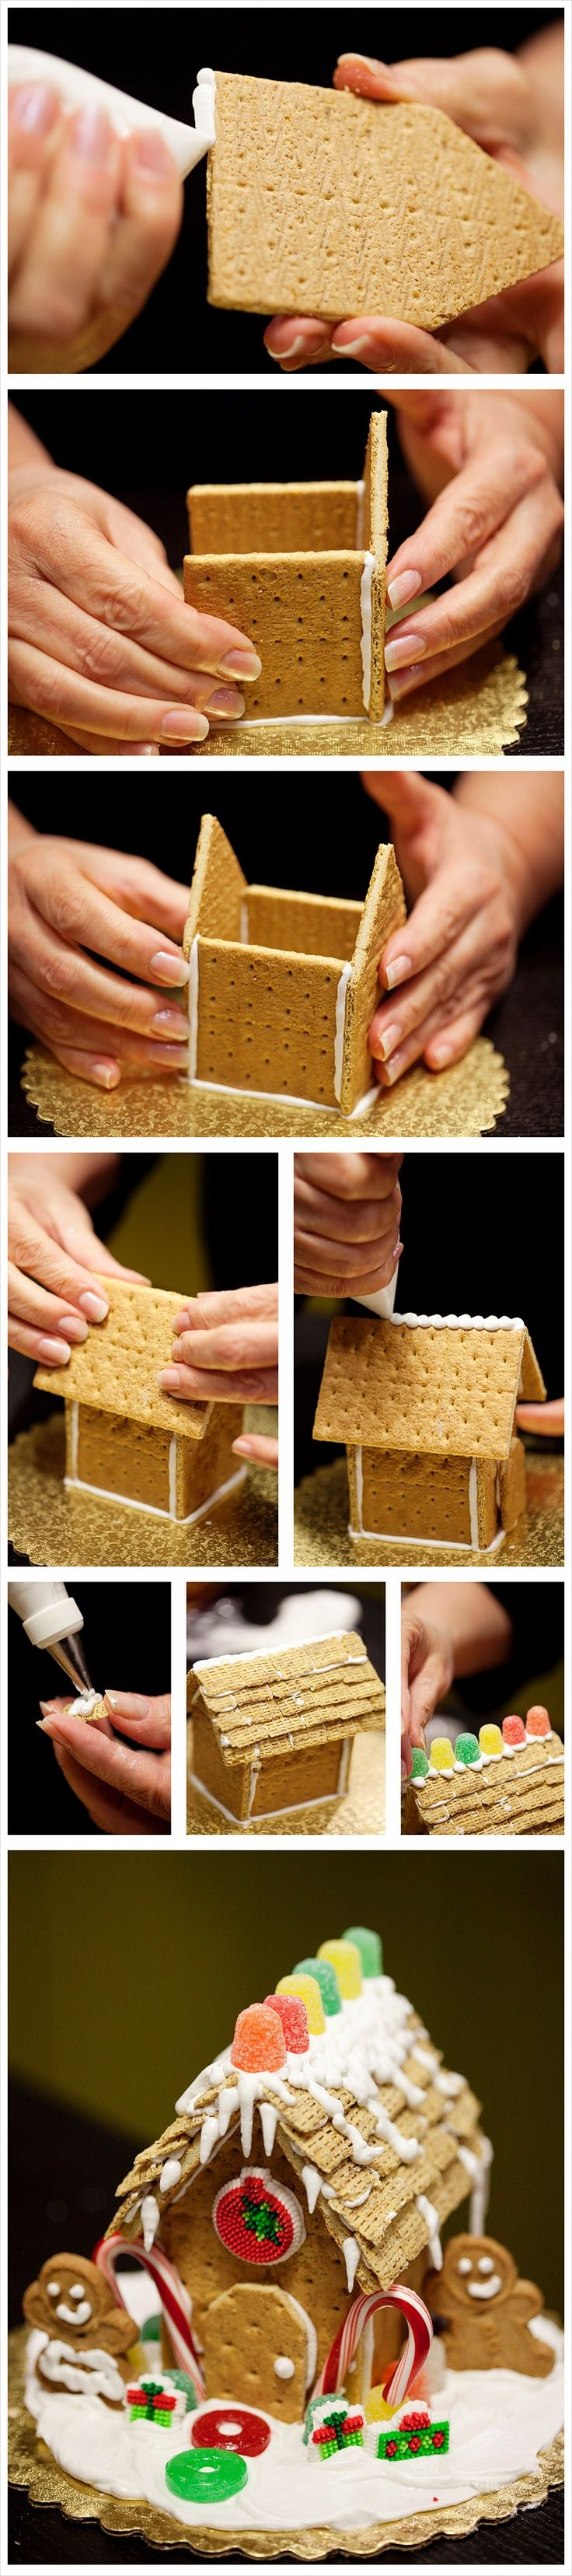 10 best craft ideas images on pinterest cowboy party craft ideas mini gingerbread houses by kelimoorebag made of graham crackers solutioingenieria Choice Image